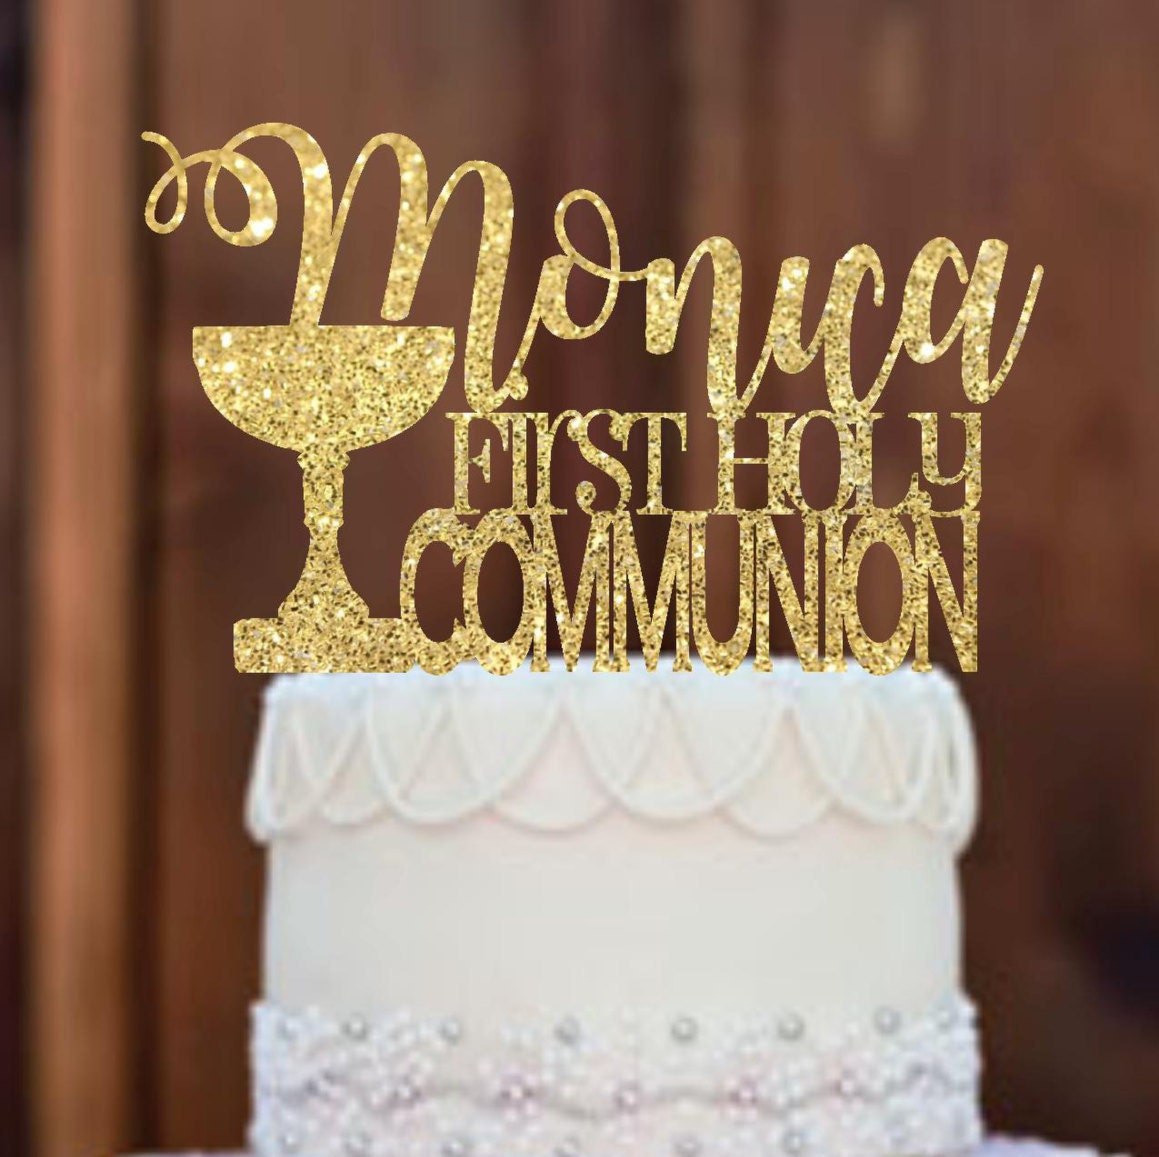 Cake topper first communion cake topper first communion - Holy communion cake decorations ...